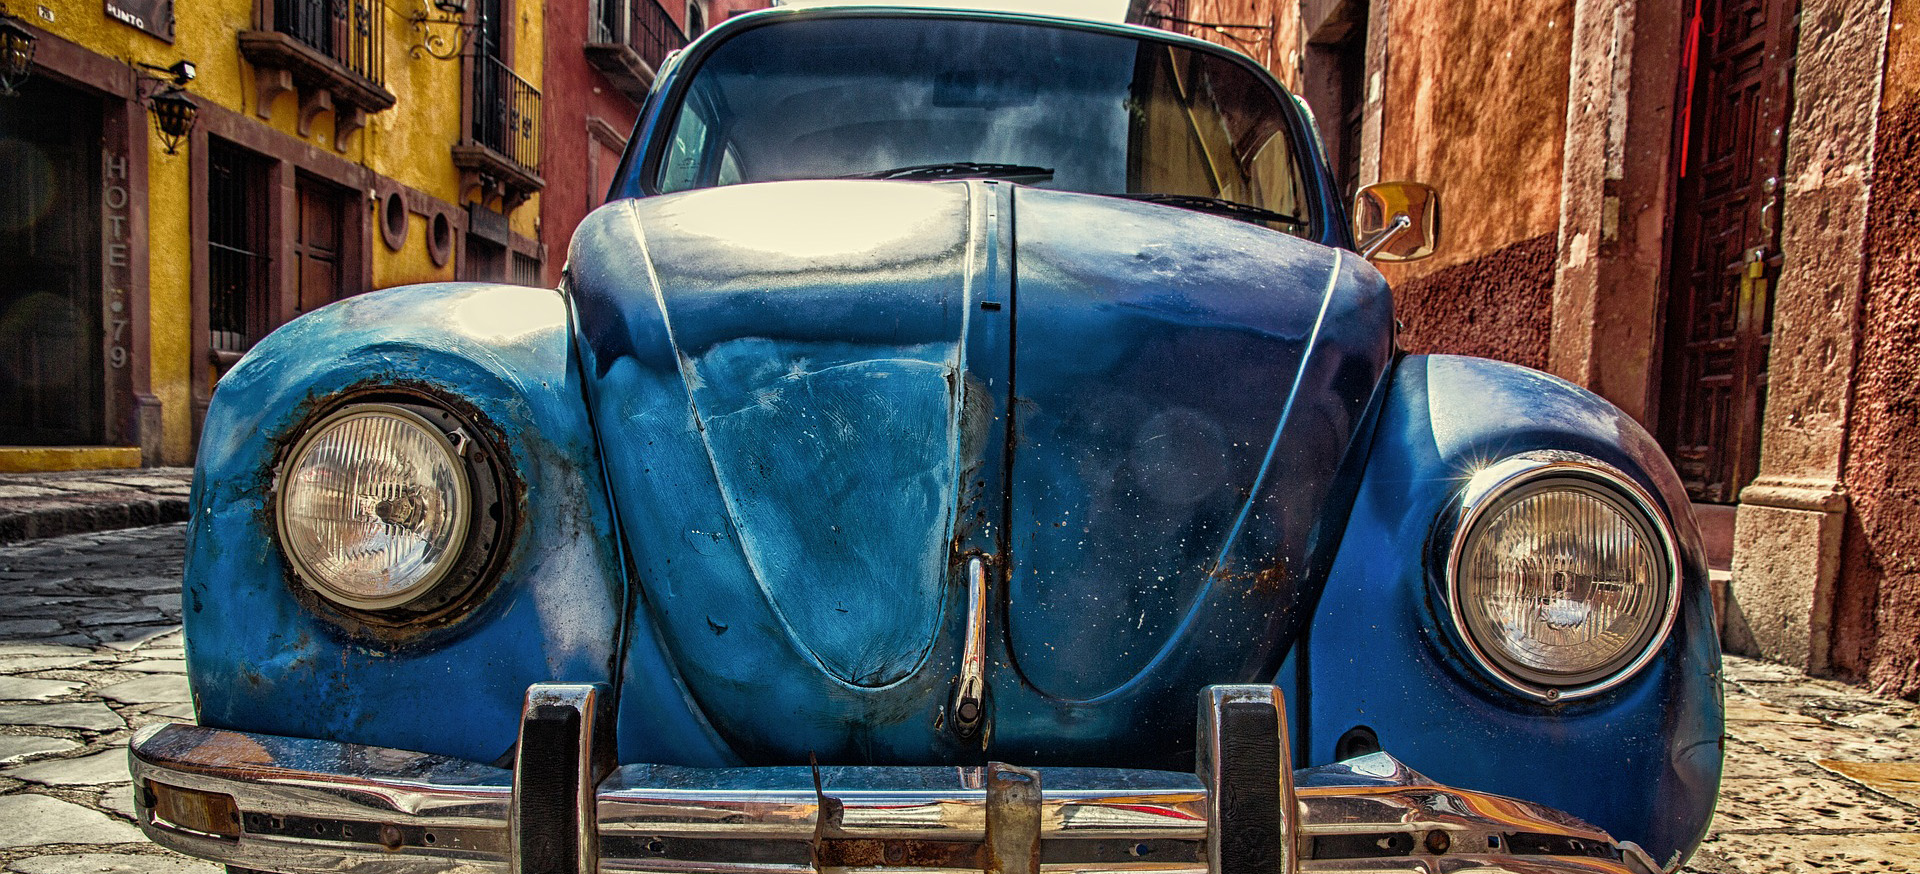 Oldtimer Beetle in Annapolis Maryland, Donate a Vehicle and Save Lives! | Breast Cancer Car Donations